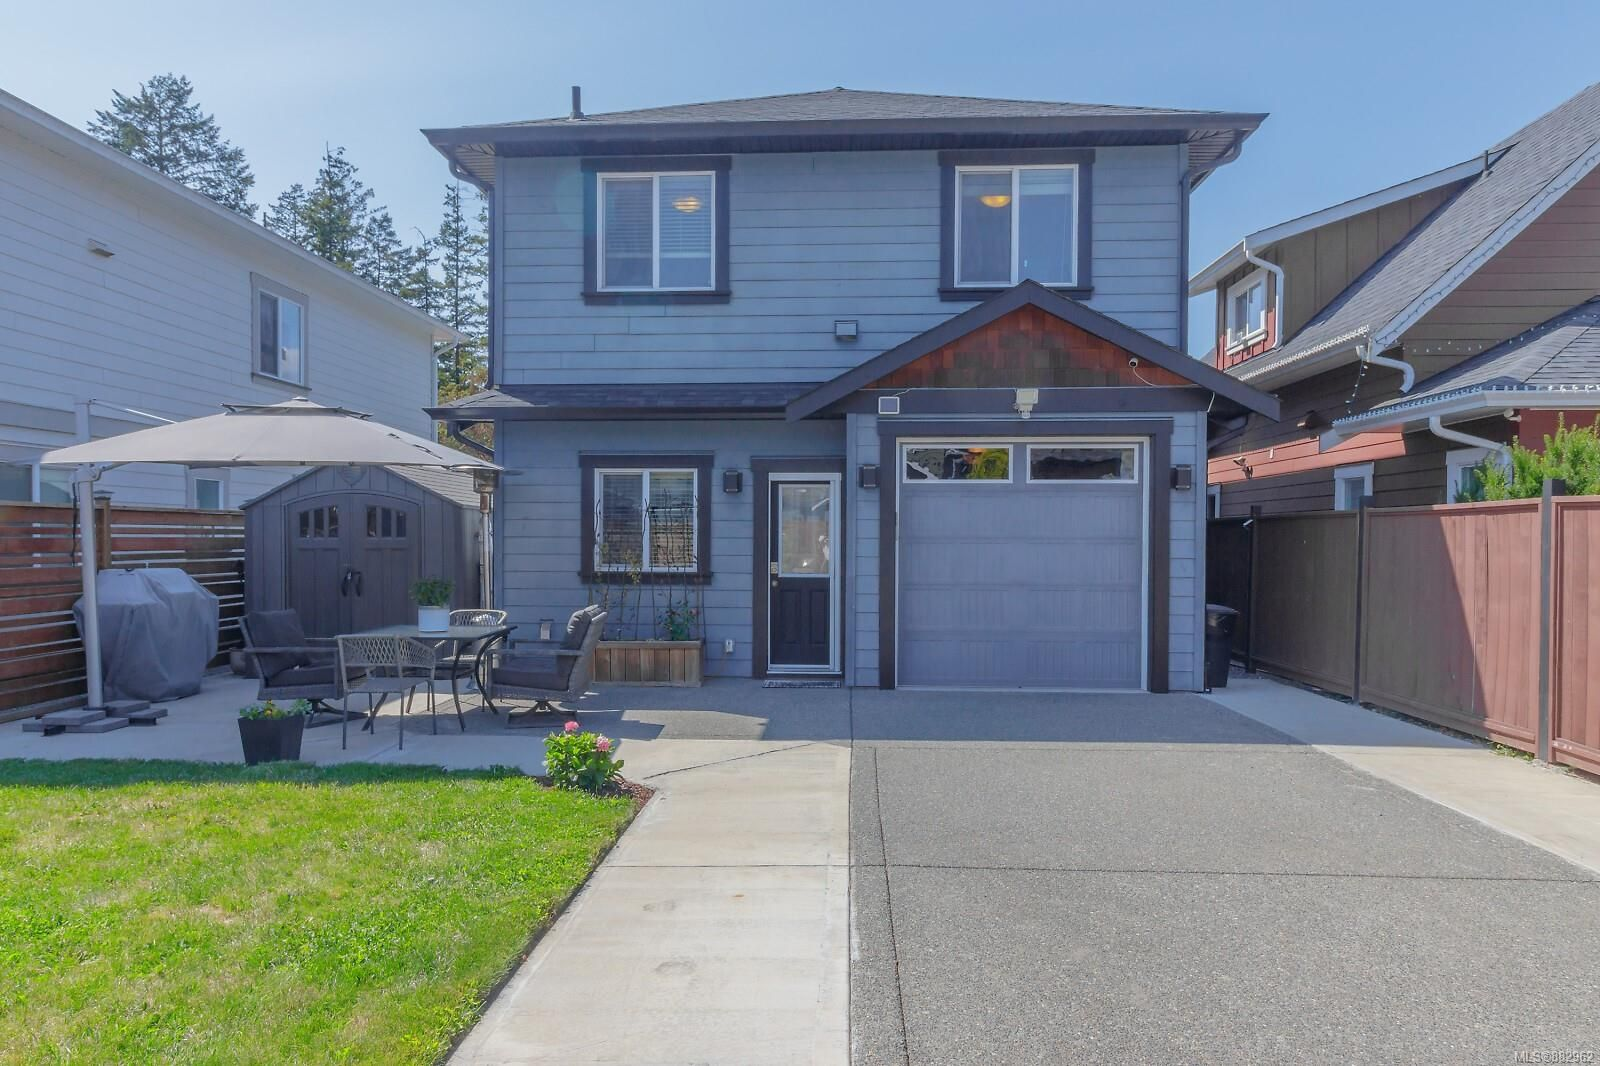 Main Photo: 3373 Piper Rd in : La Luxton House for sale (Langford)  : MLS®# 882962